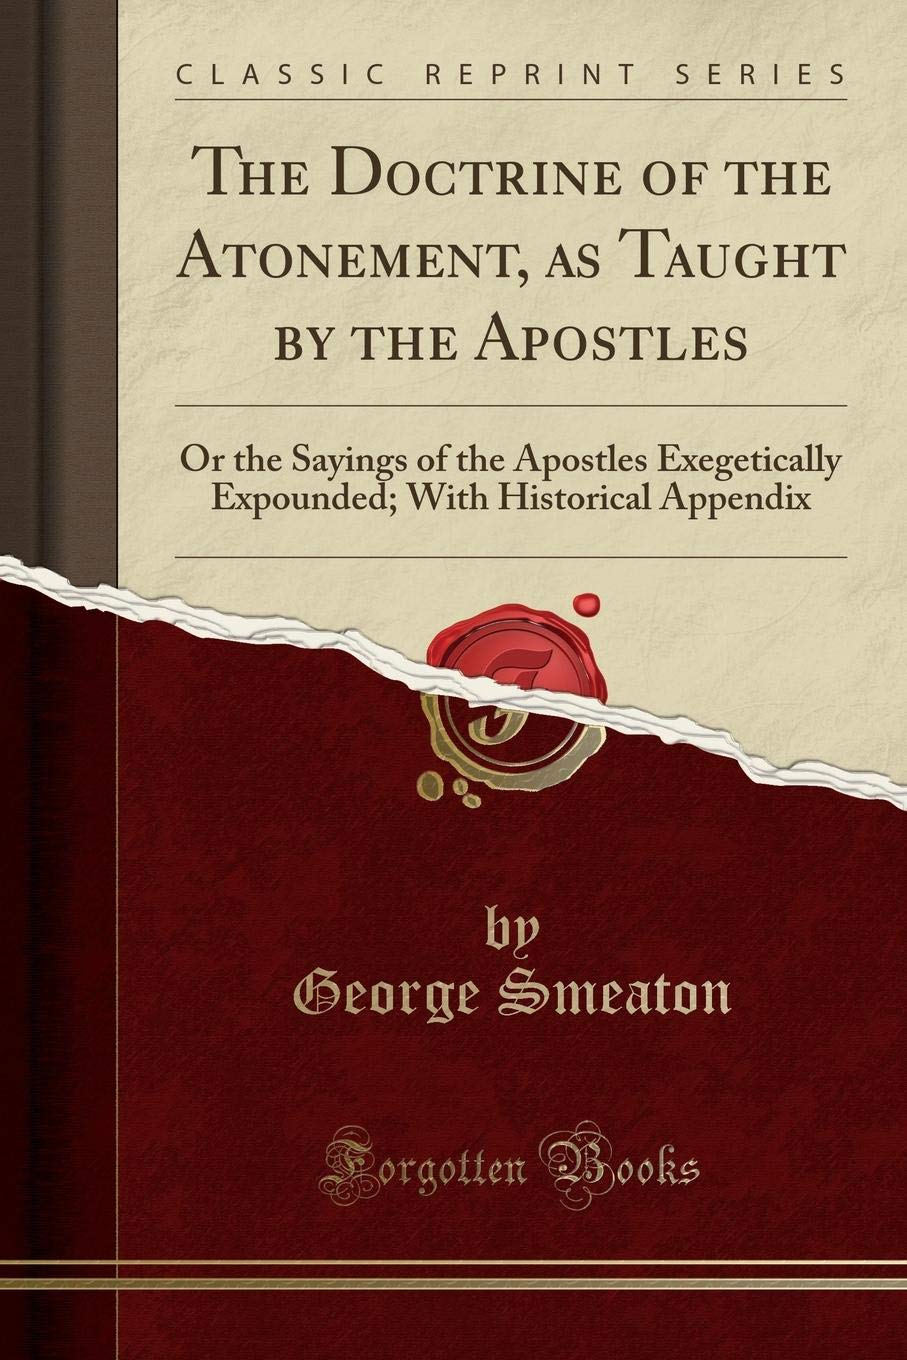 Download The Doctrine of the Atonement, as Taught by the Apostles: Or the Sayings of the Apostles Exegetically Expounded; With Historical Appendix (Classic Reprint) ebook